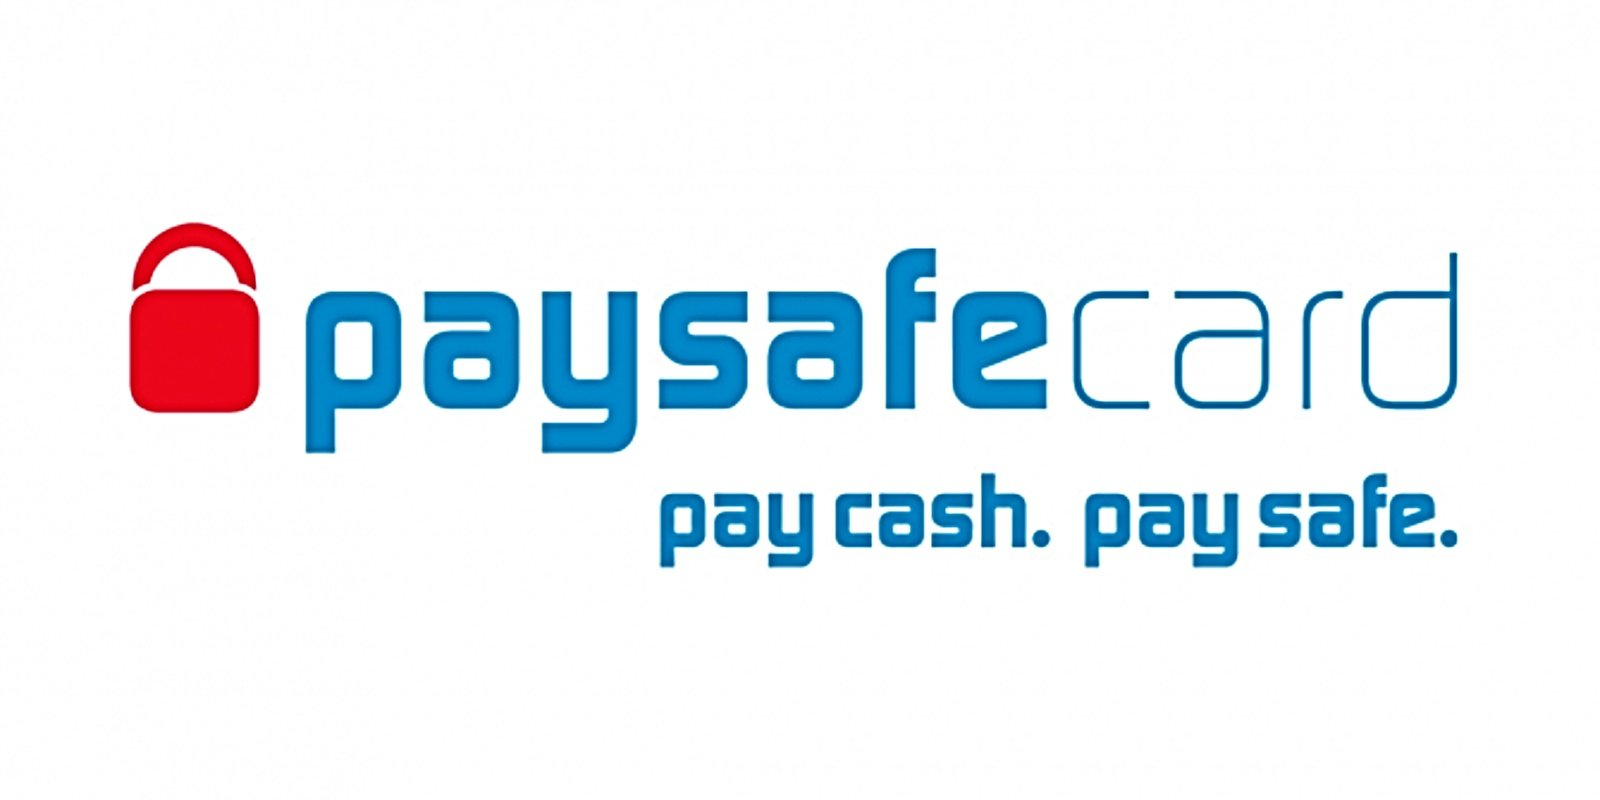 Miller Distributors Ltd is proud to introduce Paysafecard.